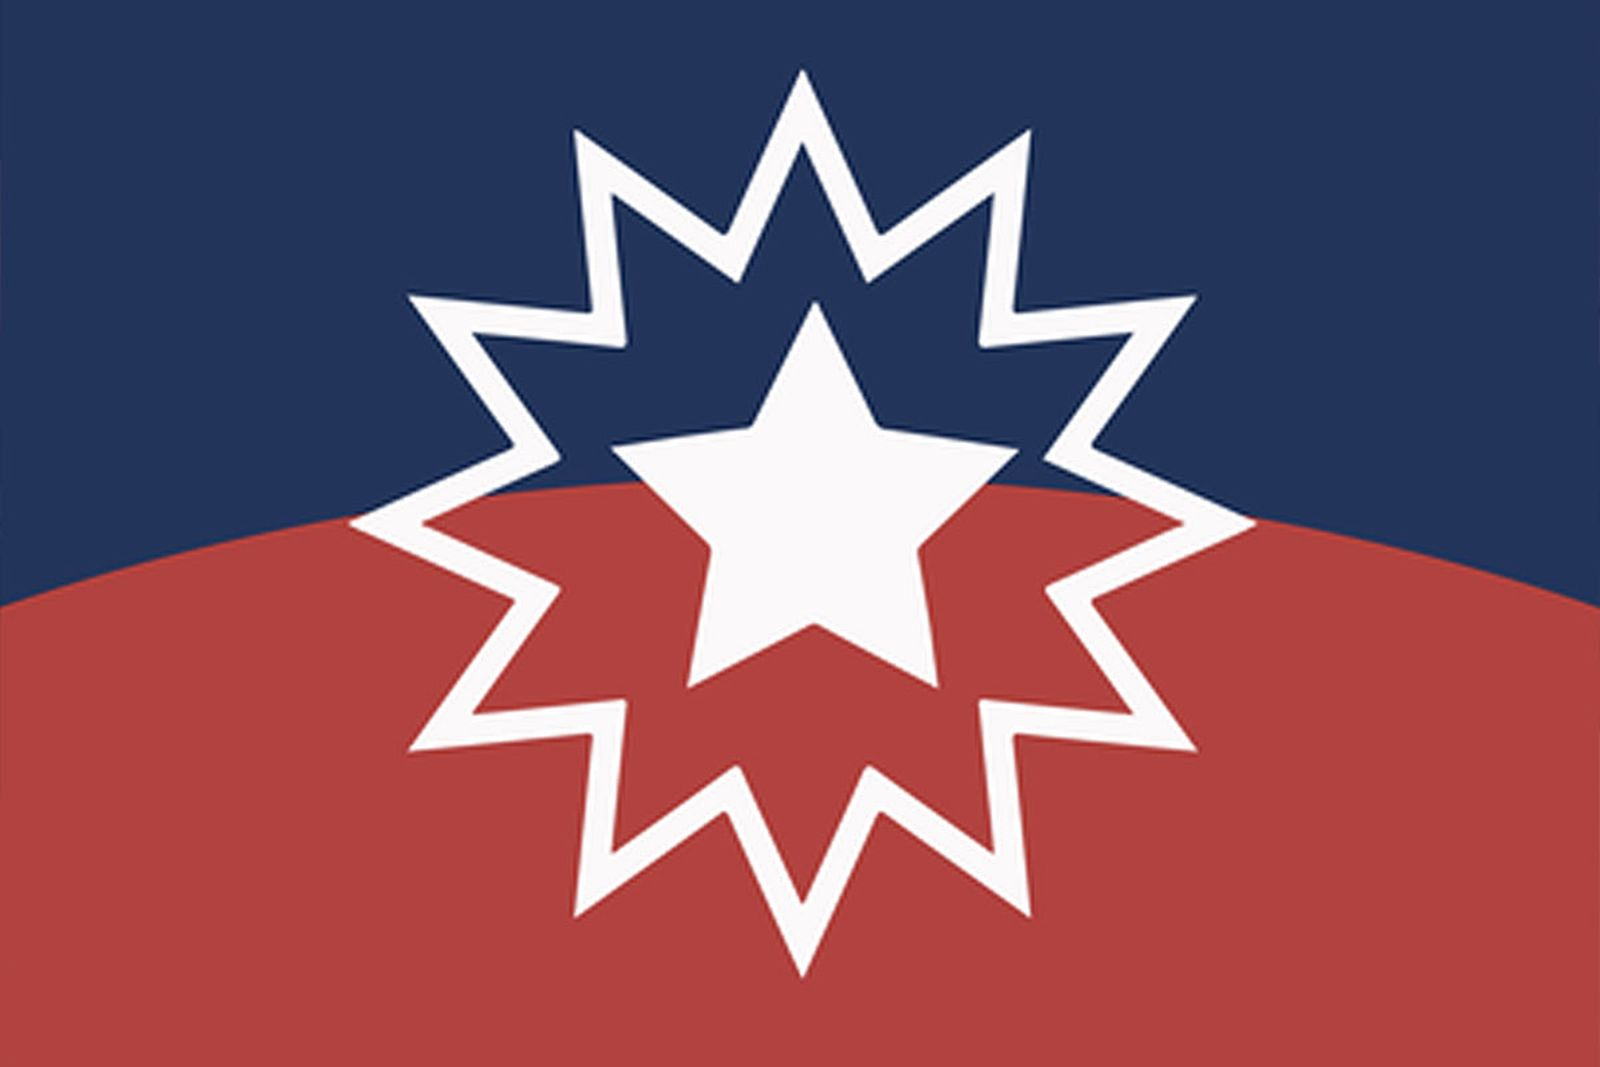 juneteenth-flag-meaning-01